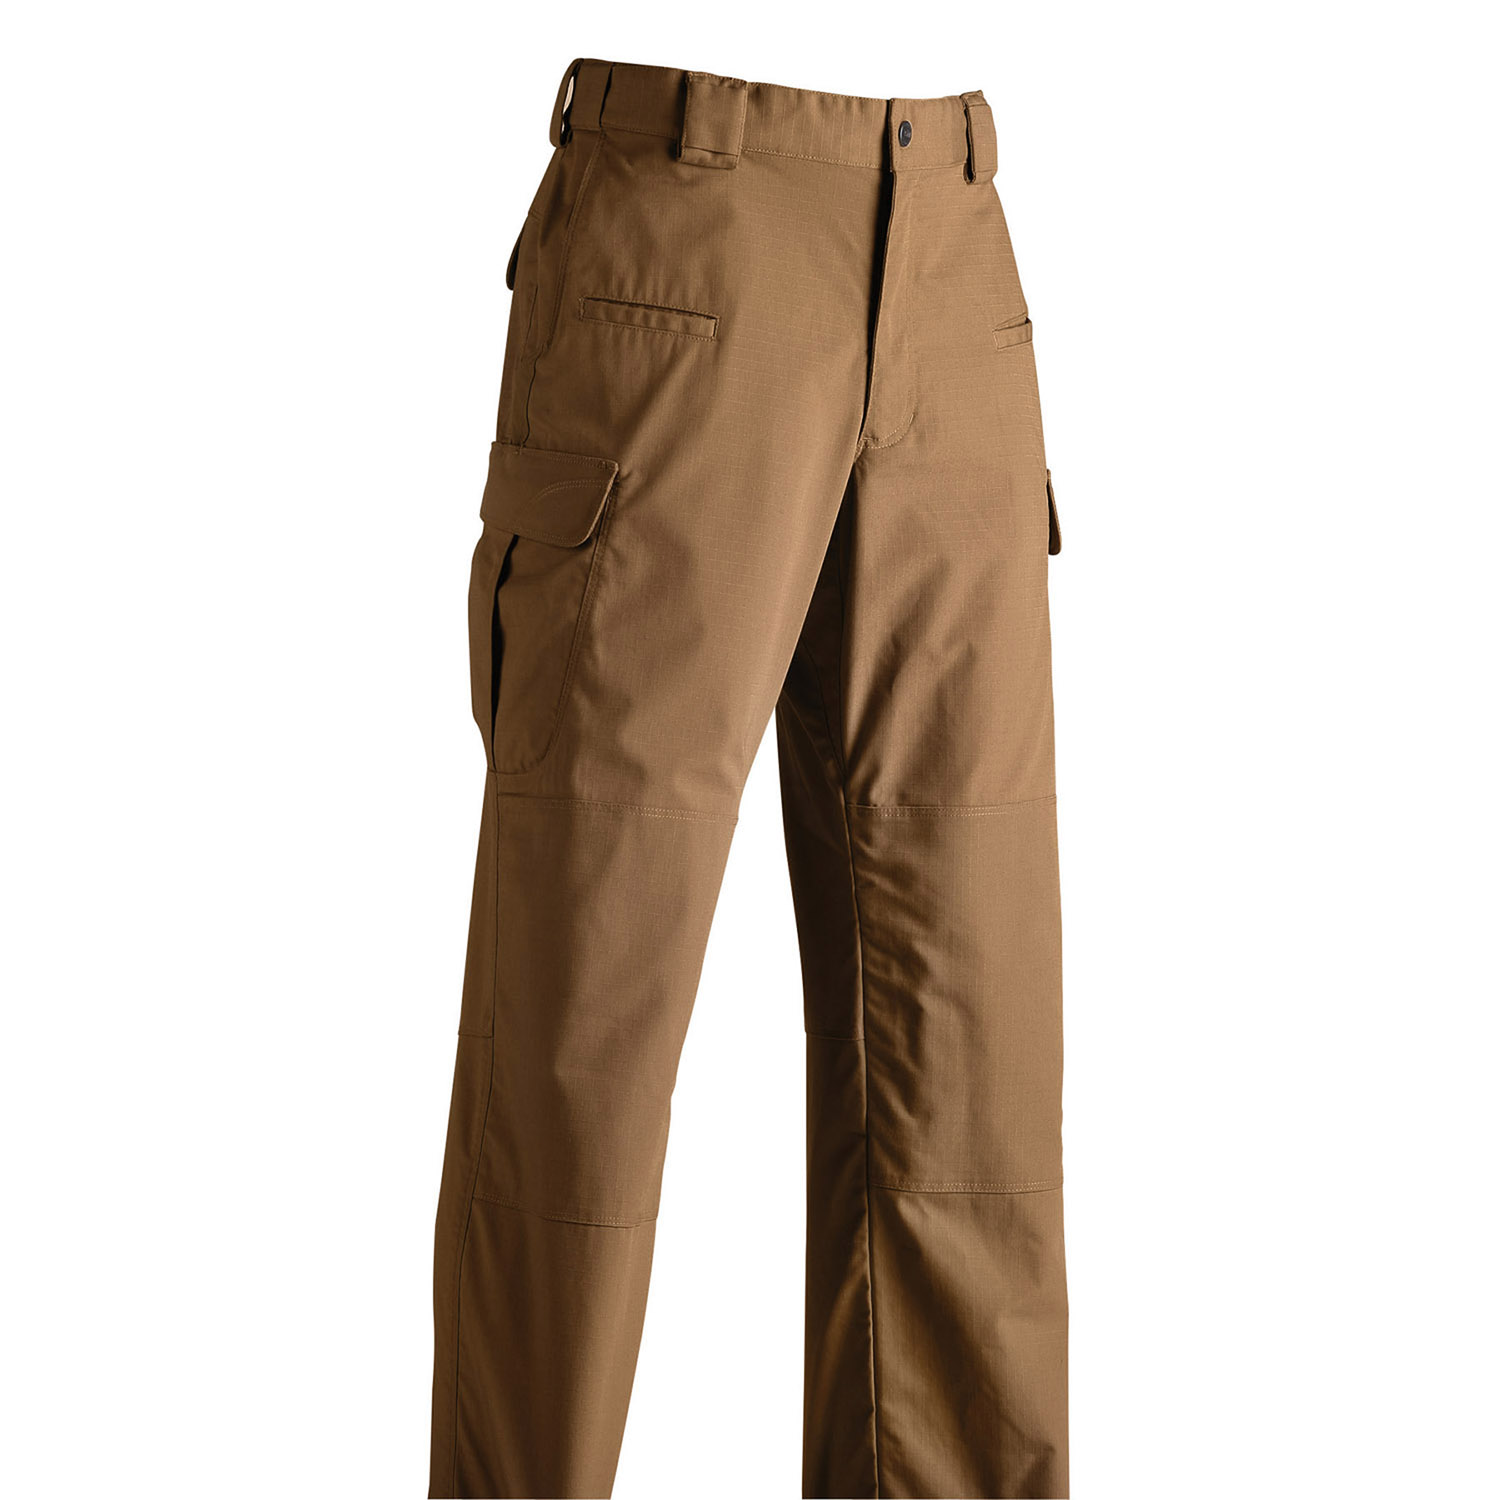 5.11 Tactical Stryke Pant with FlexTac